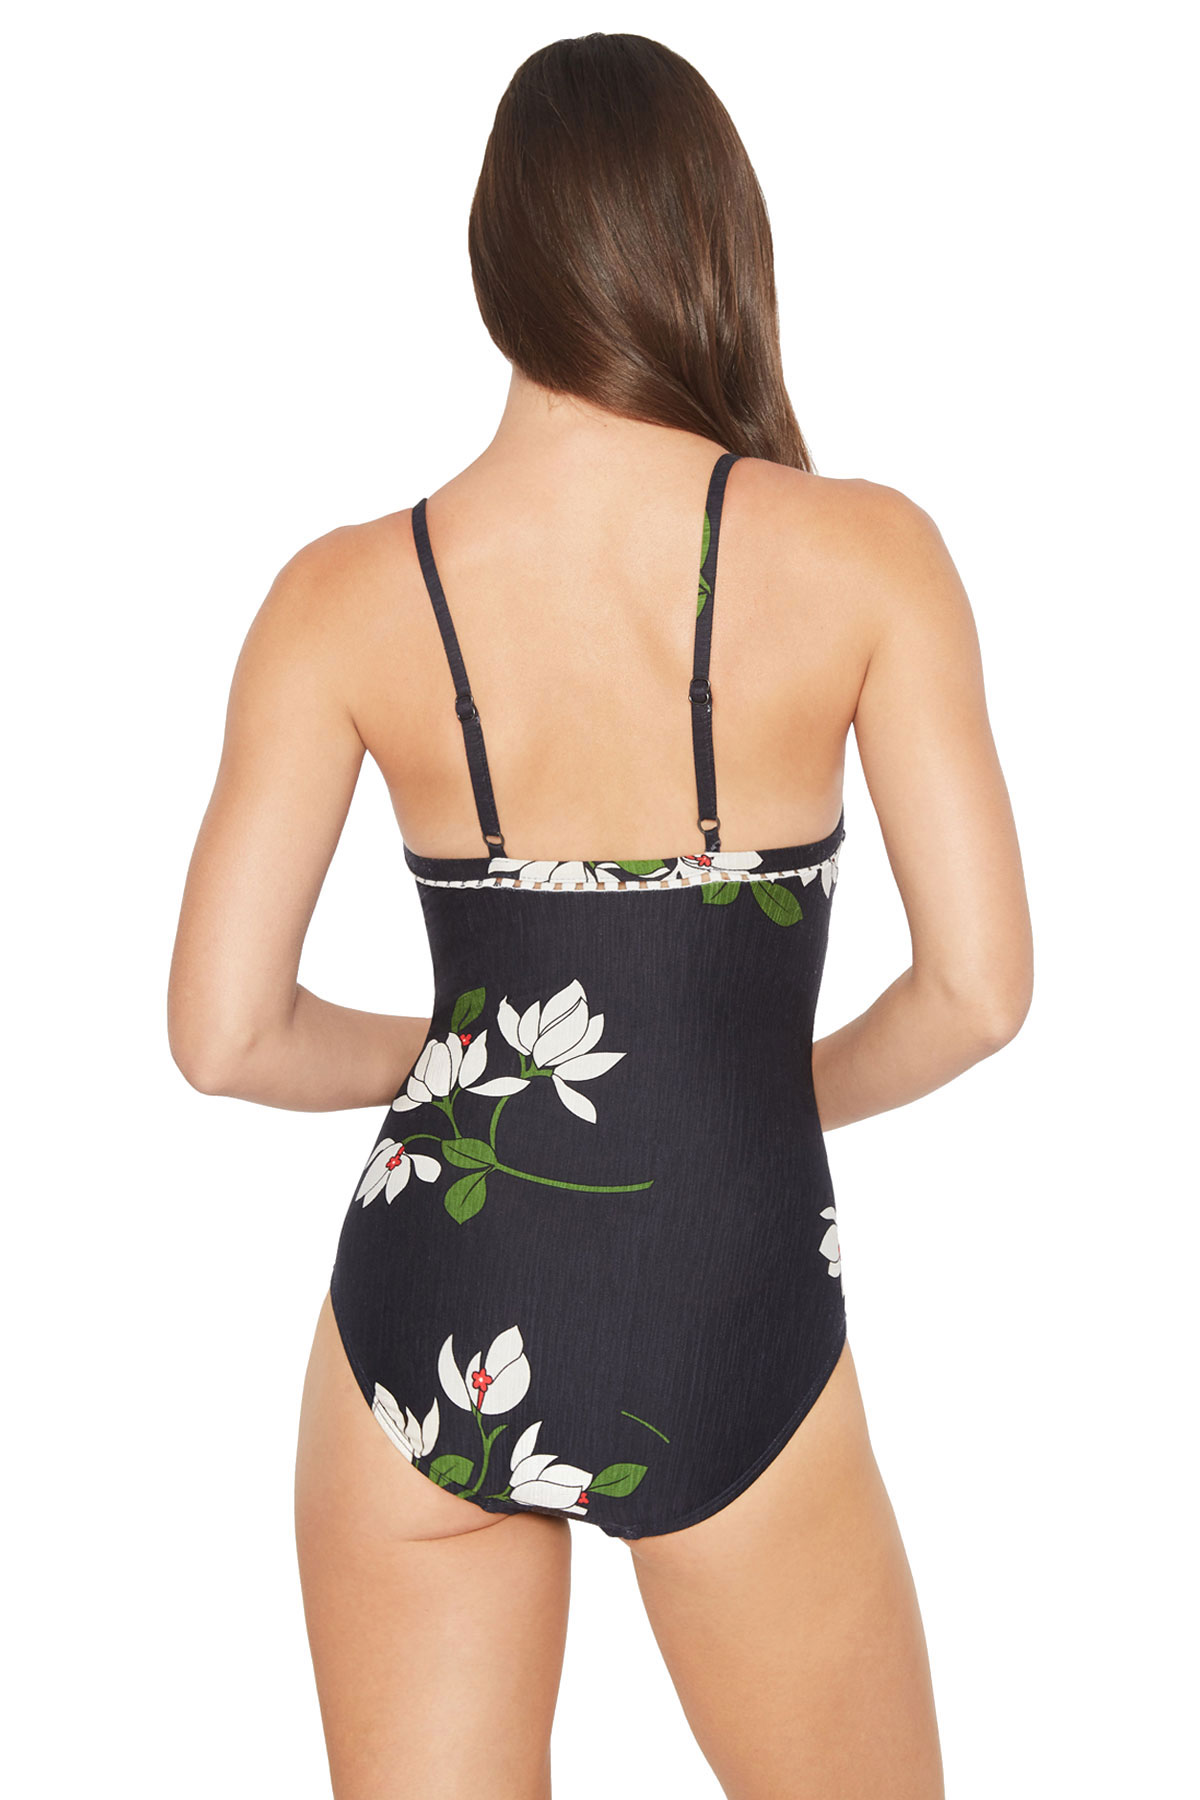 V-Neck Over The Shoulder One Piece Swimsuit  - Midnight Multi 2